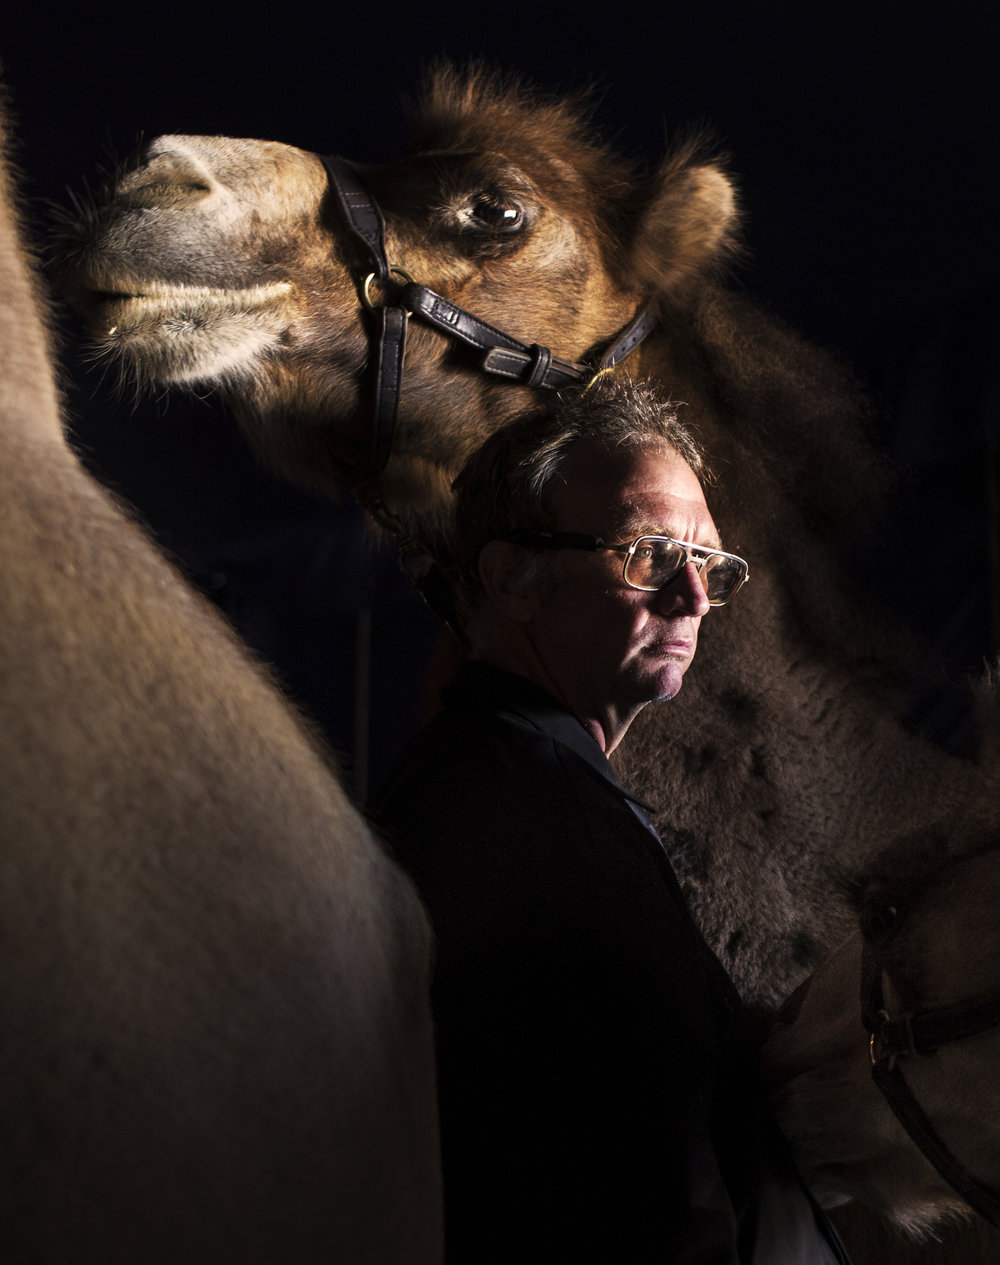 Adam Baker, an animal care taker for Coronas of Hollywood, a Florida circus performing at The Great New York State Fair in Syracuse, N.Y., tends to a group of Bactrian camels before for their performance on Sept. 2, 2017.